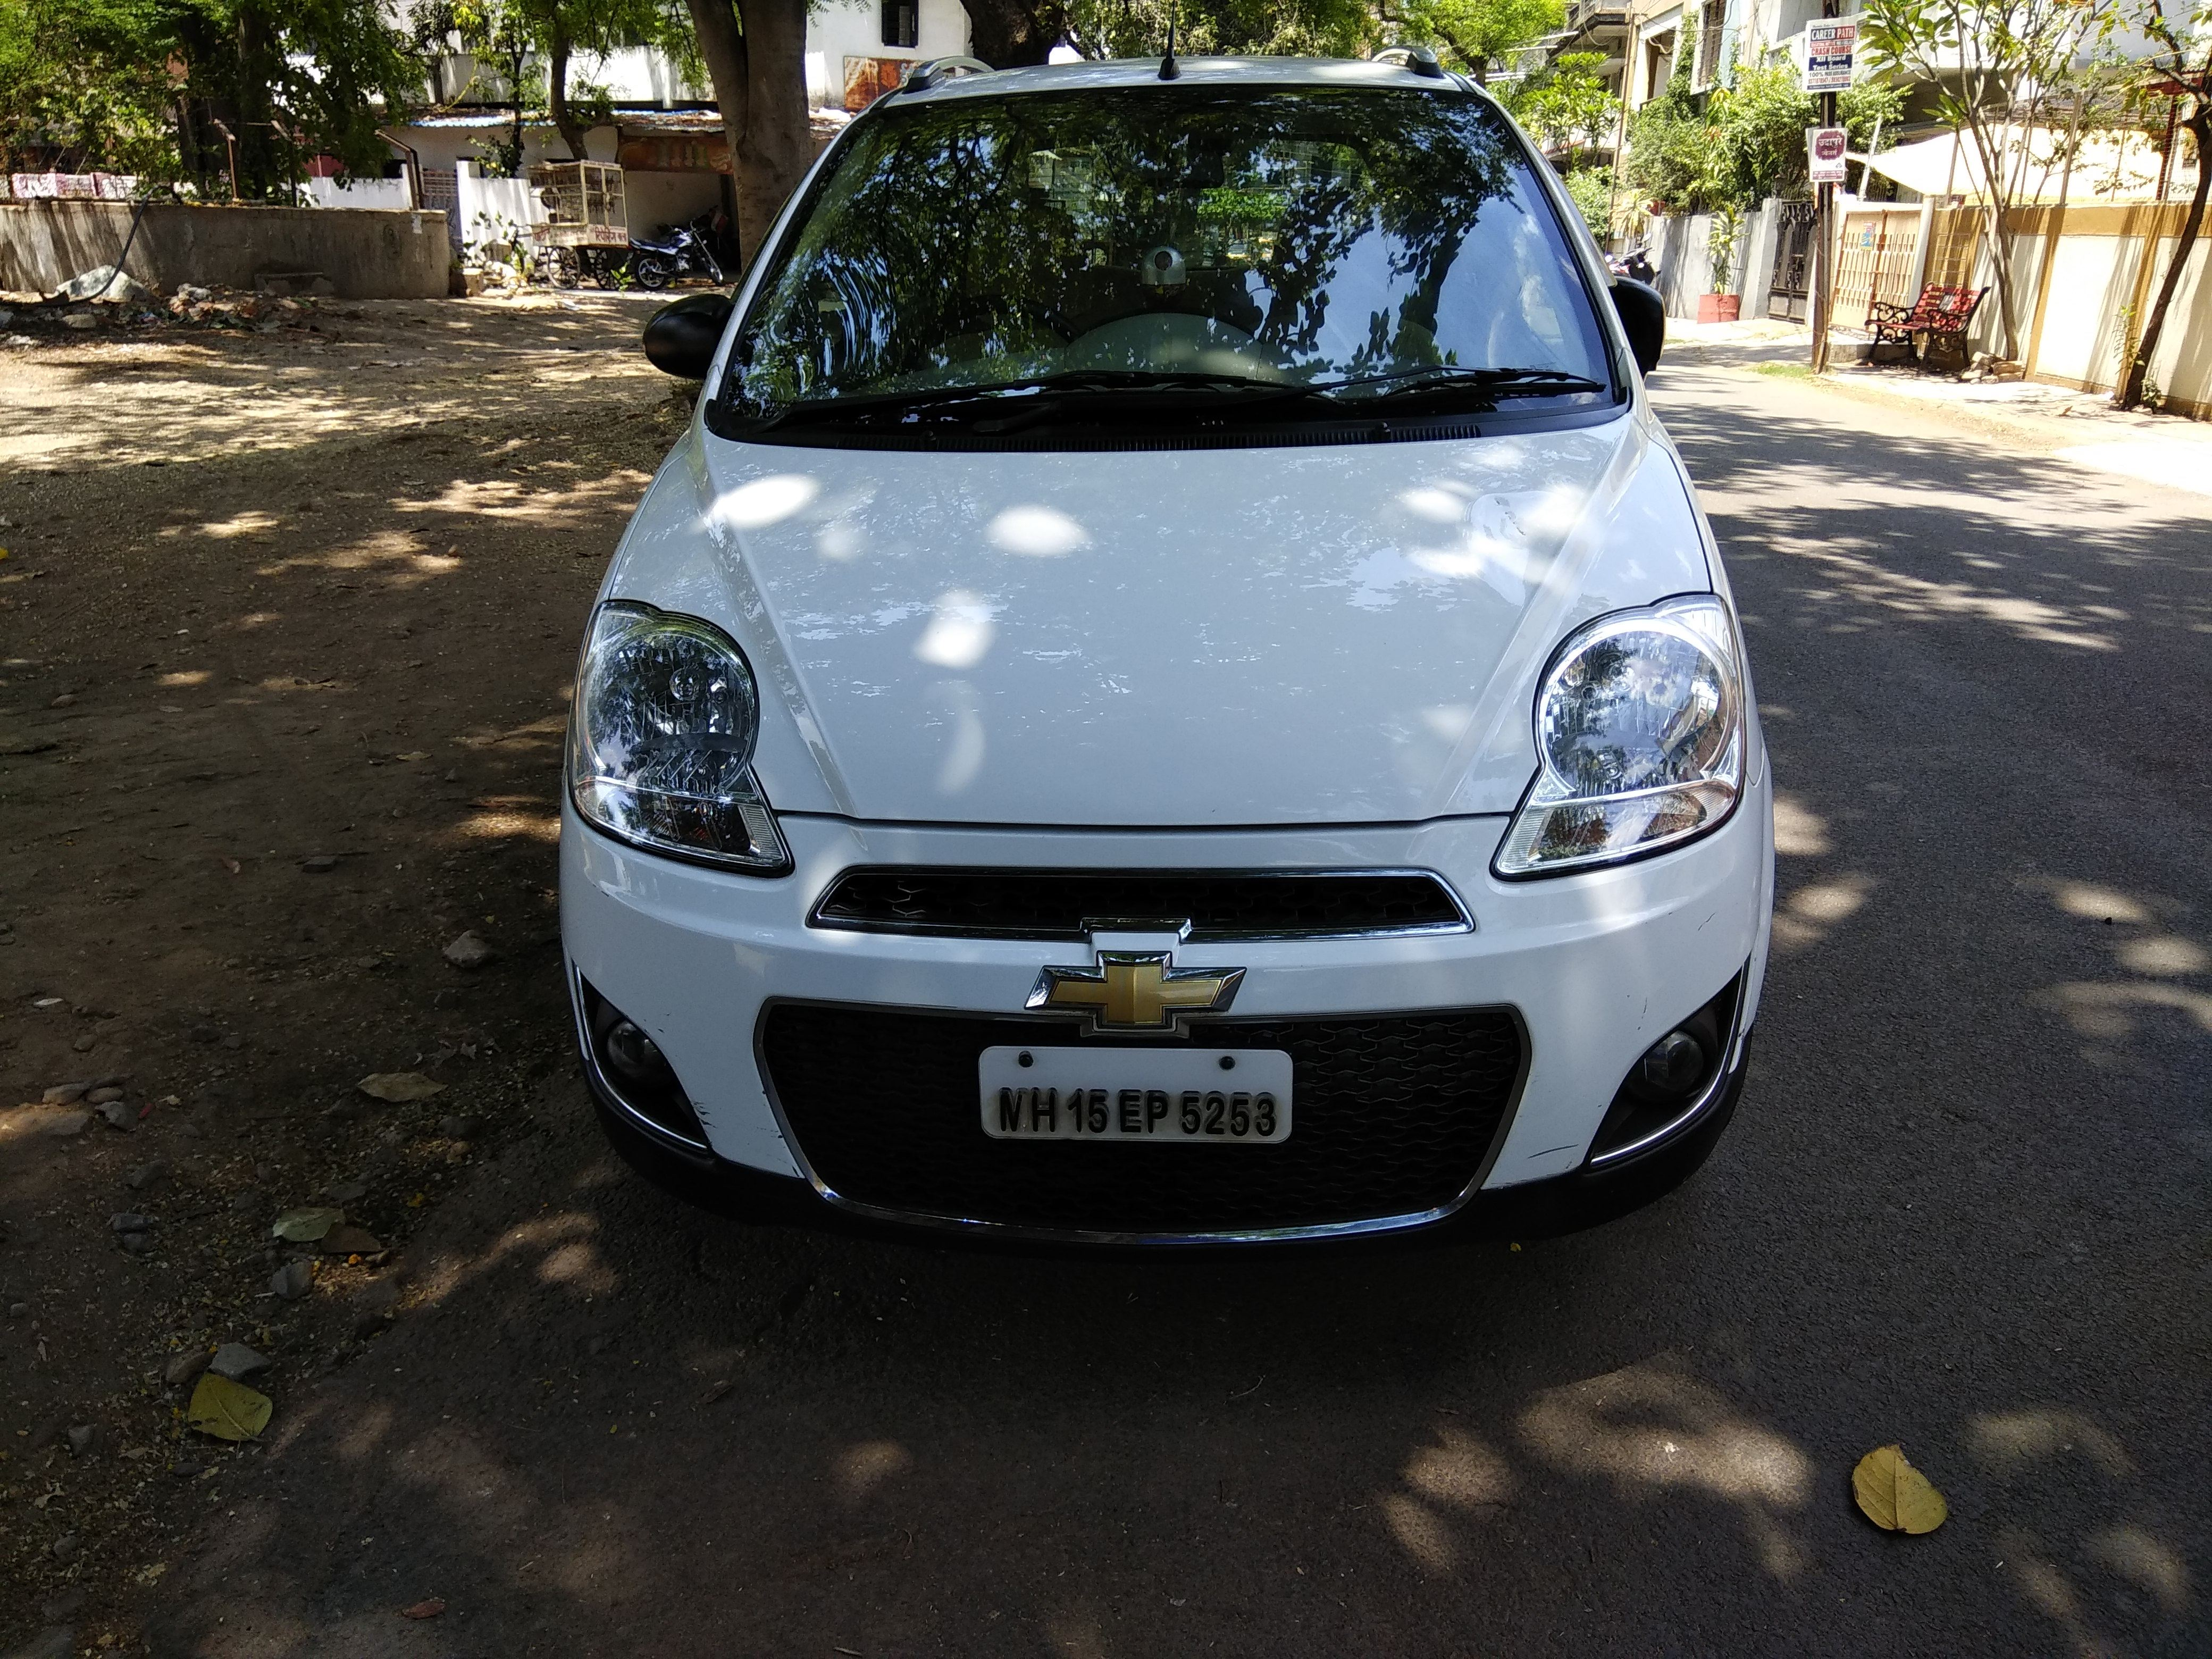 Used Chevrolet In Nagpur Mahindra First Choice